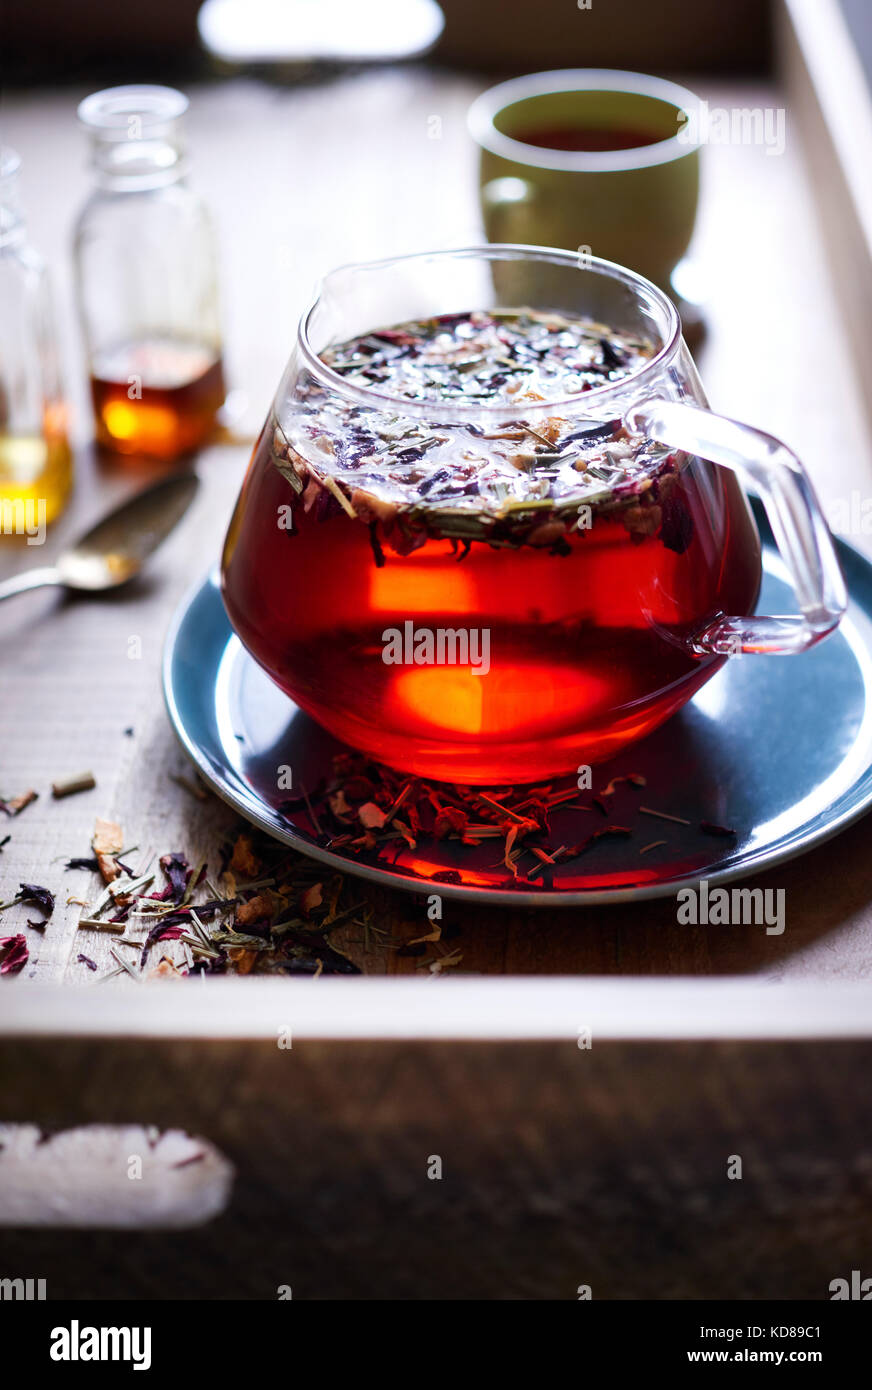 A bright airy scene of a warm wood tea tray with loose leaf tea floating in red tea in a glass teapot with honey - Stock Image